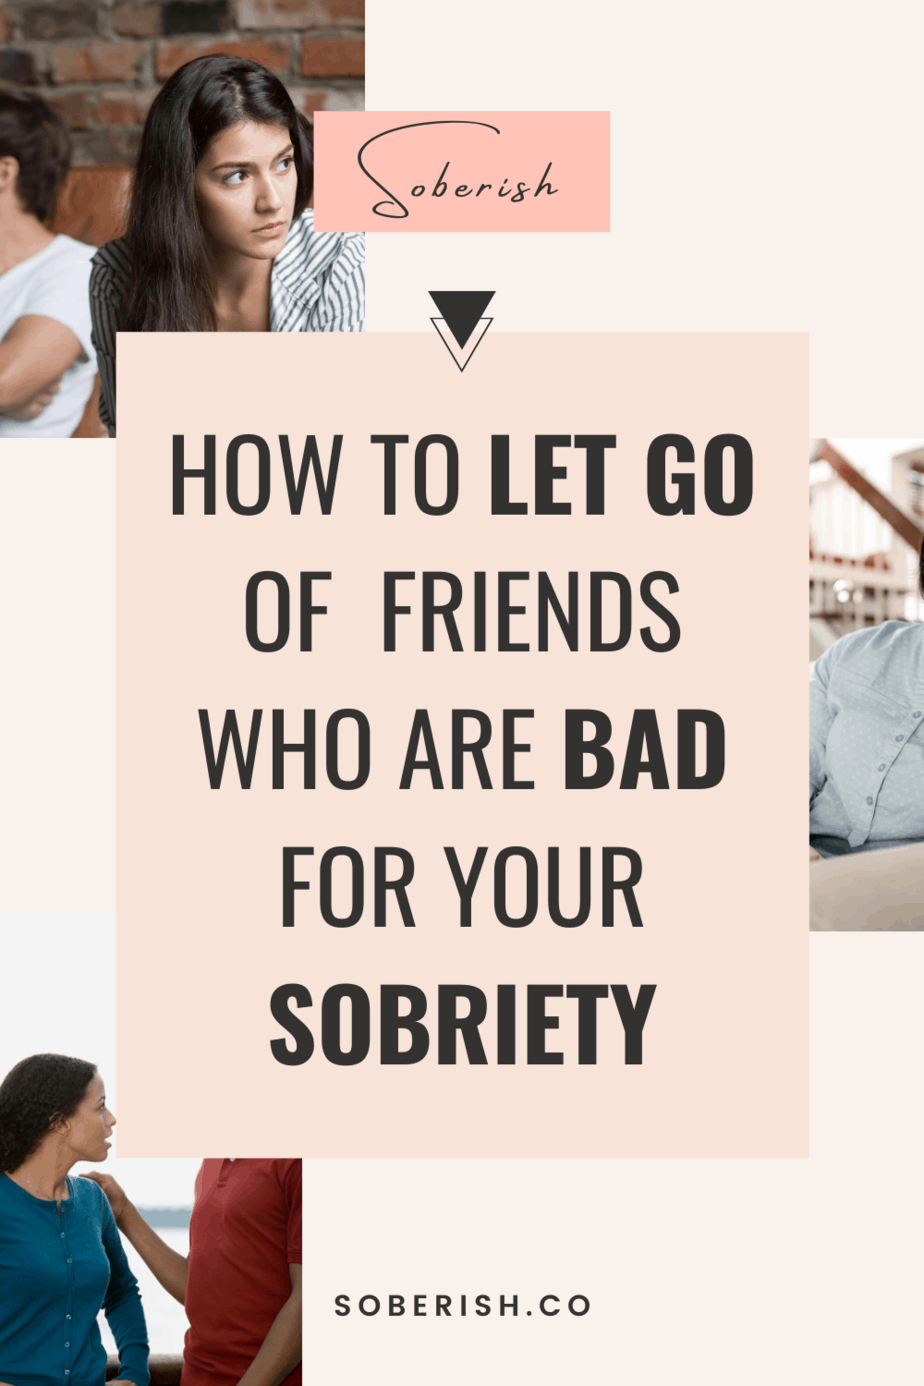 How to let go of friends who bad for your sobriety